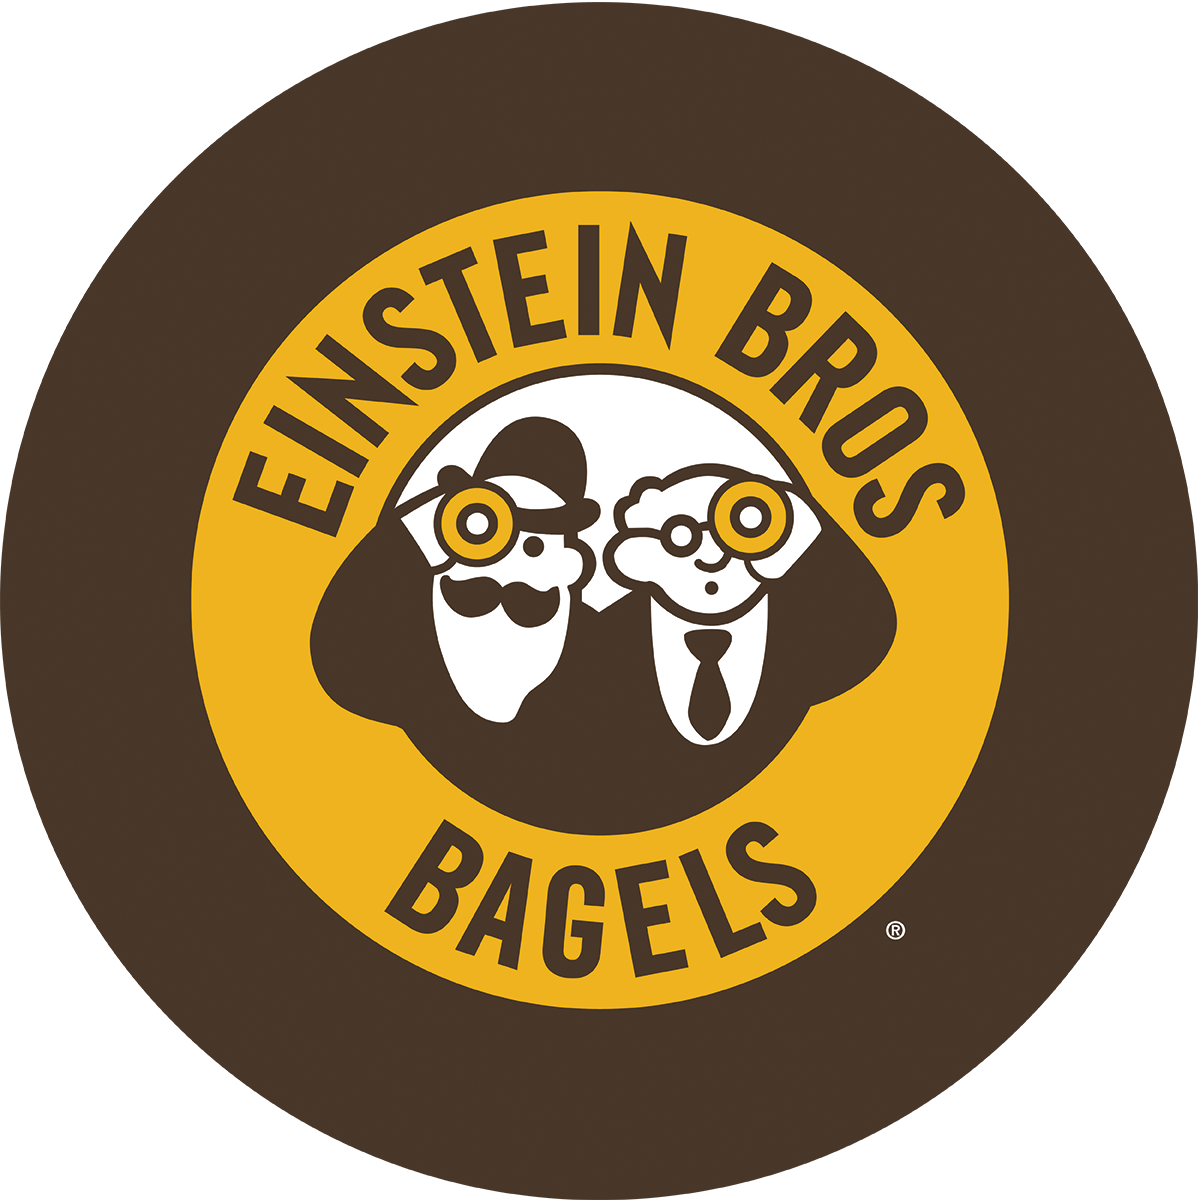 Einstein Bros. Bagels - Vermillion, SD 57069 - (605)677-5899 | ShowMeLocal.com